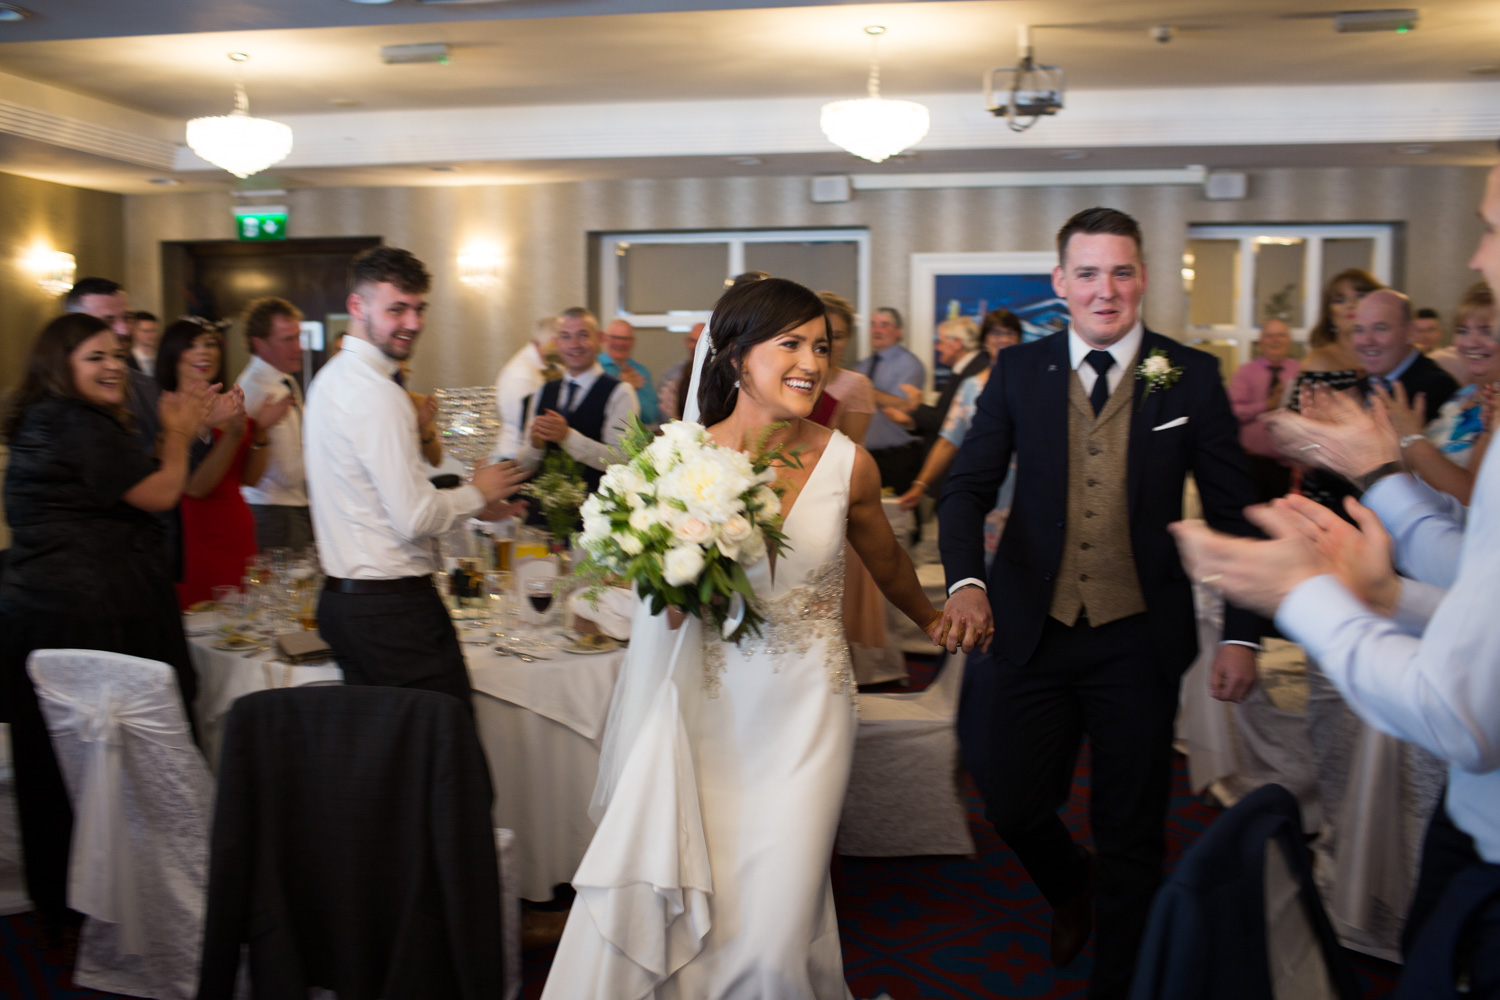 Mark_Barnes_Northern_Ireland_wedding_photographer_redcastle_hotel_Donegal_Wedding_photography_Donegal_wedding_photographer-40.jpg